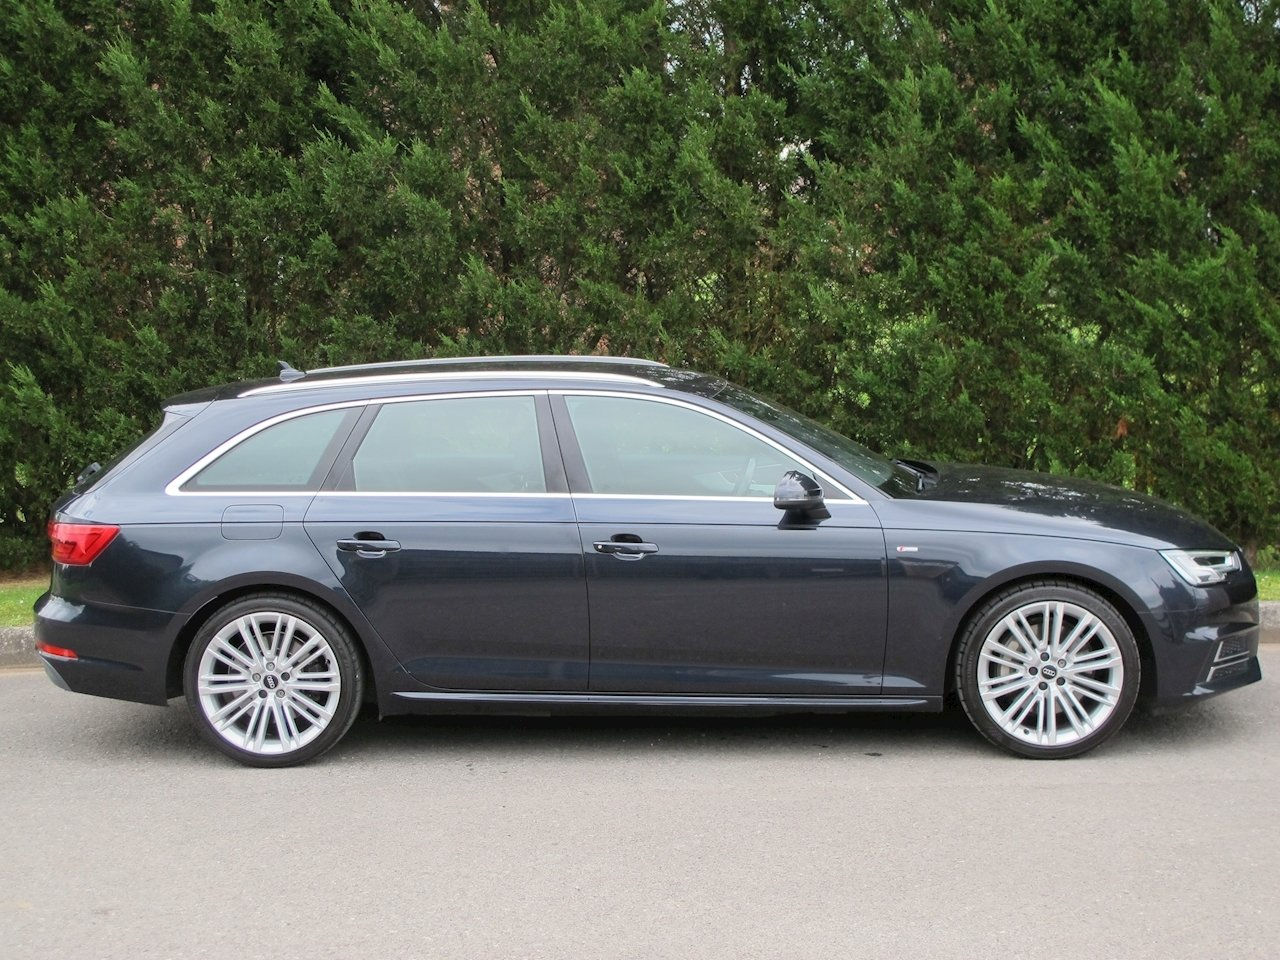 2017 Audi A4 Avant 3.0TDI 272PS quattro S Line S-Tronic For Sale (picture 3 of 6)